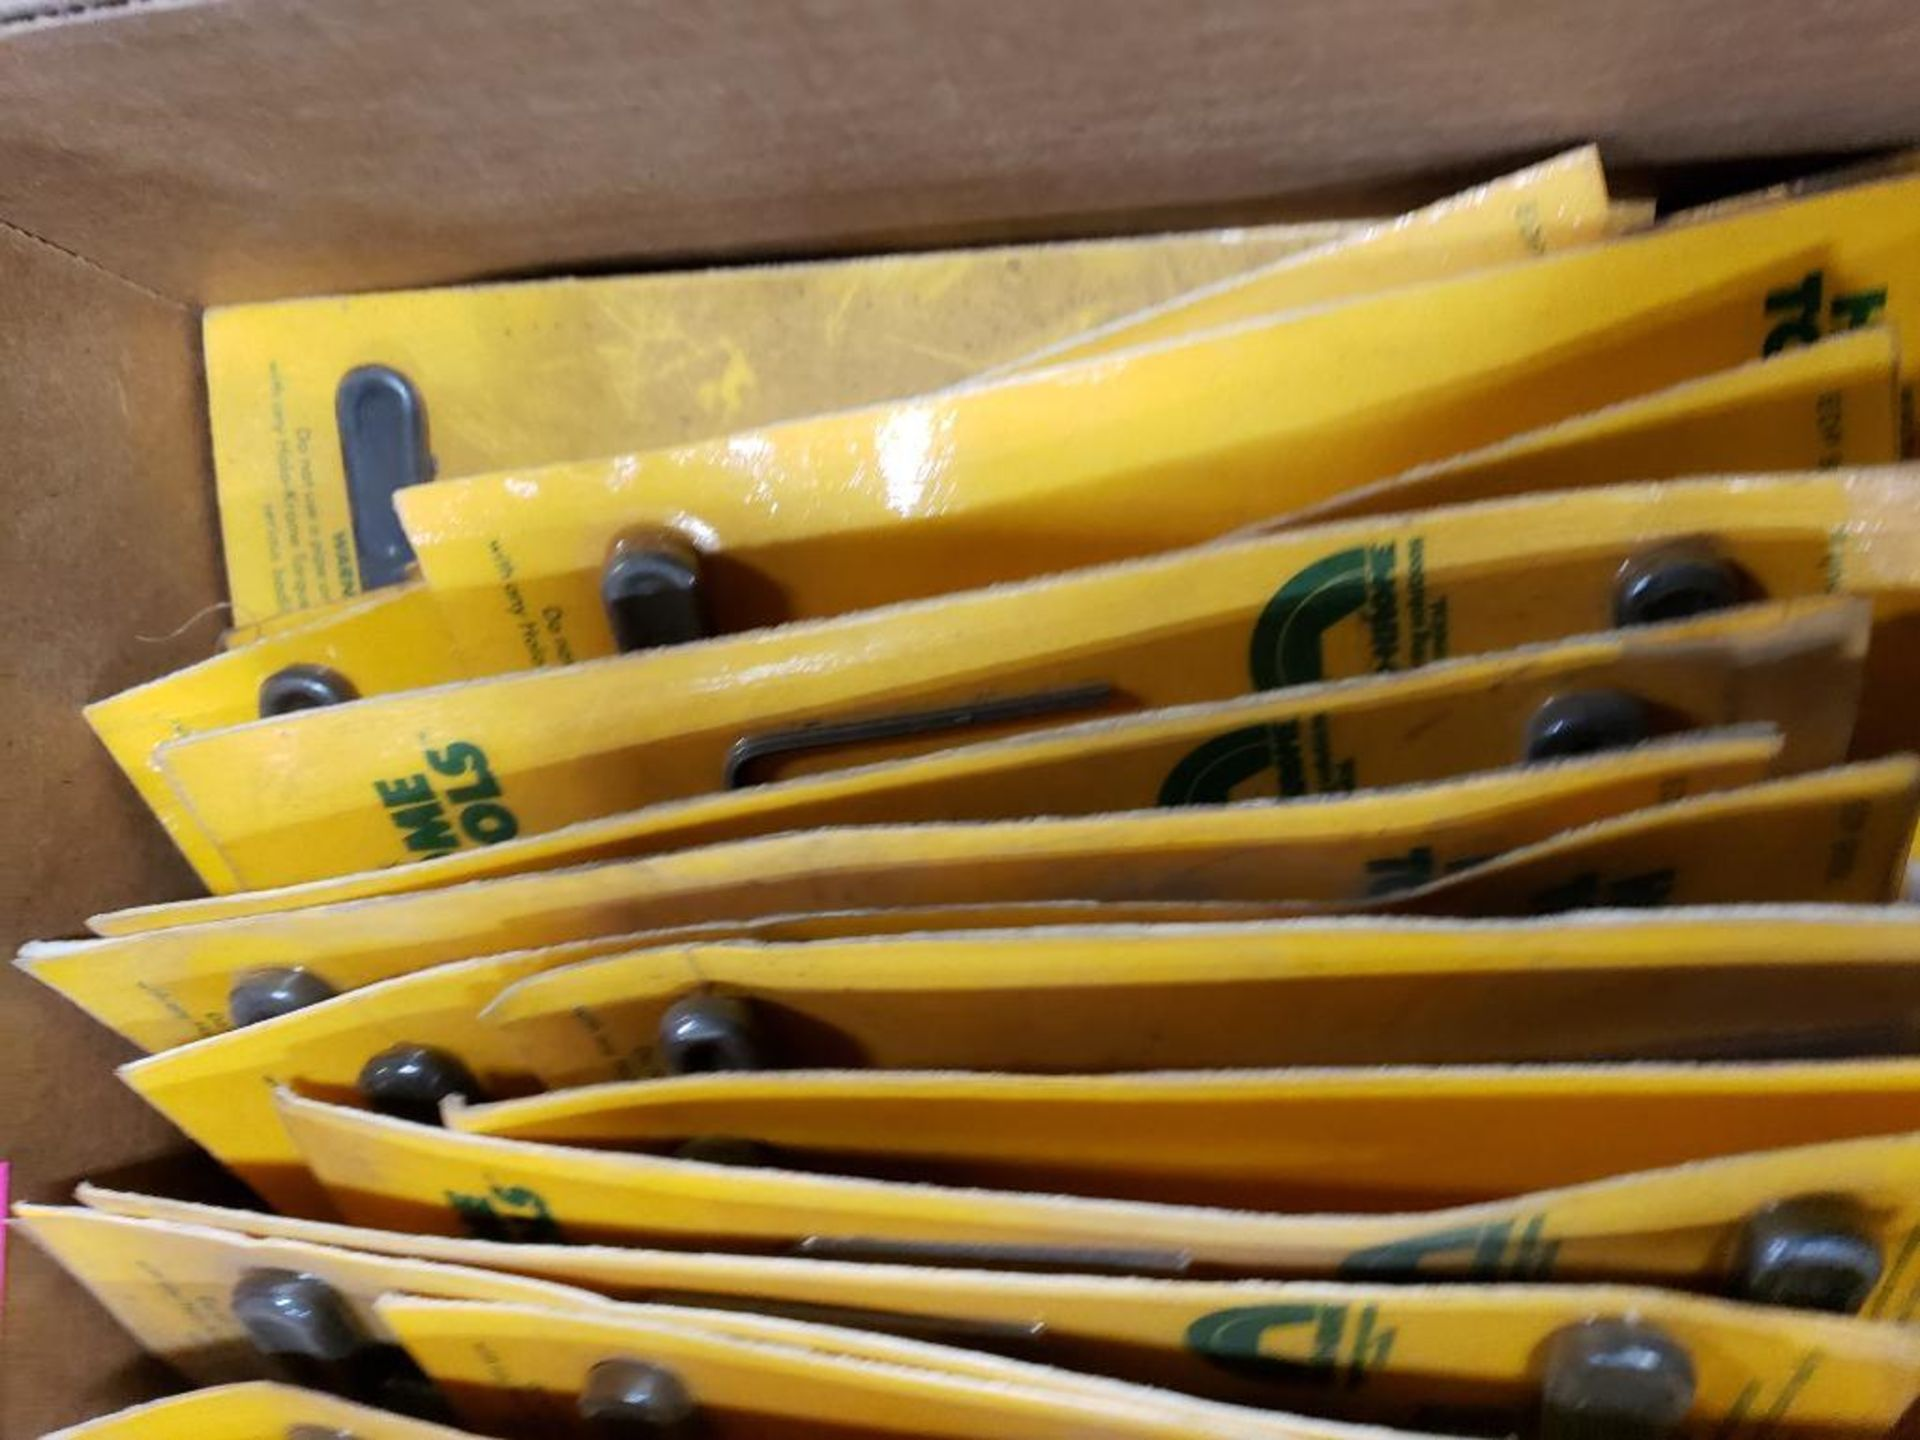 Large Qty of Holo-Krome allen wrenches. New. - Image 2 of 4